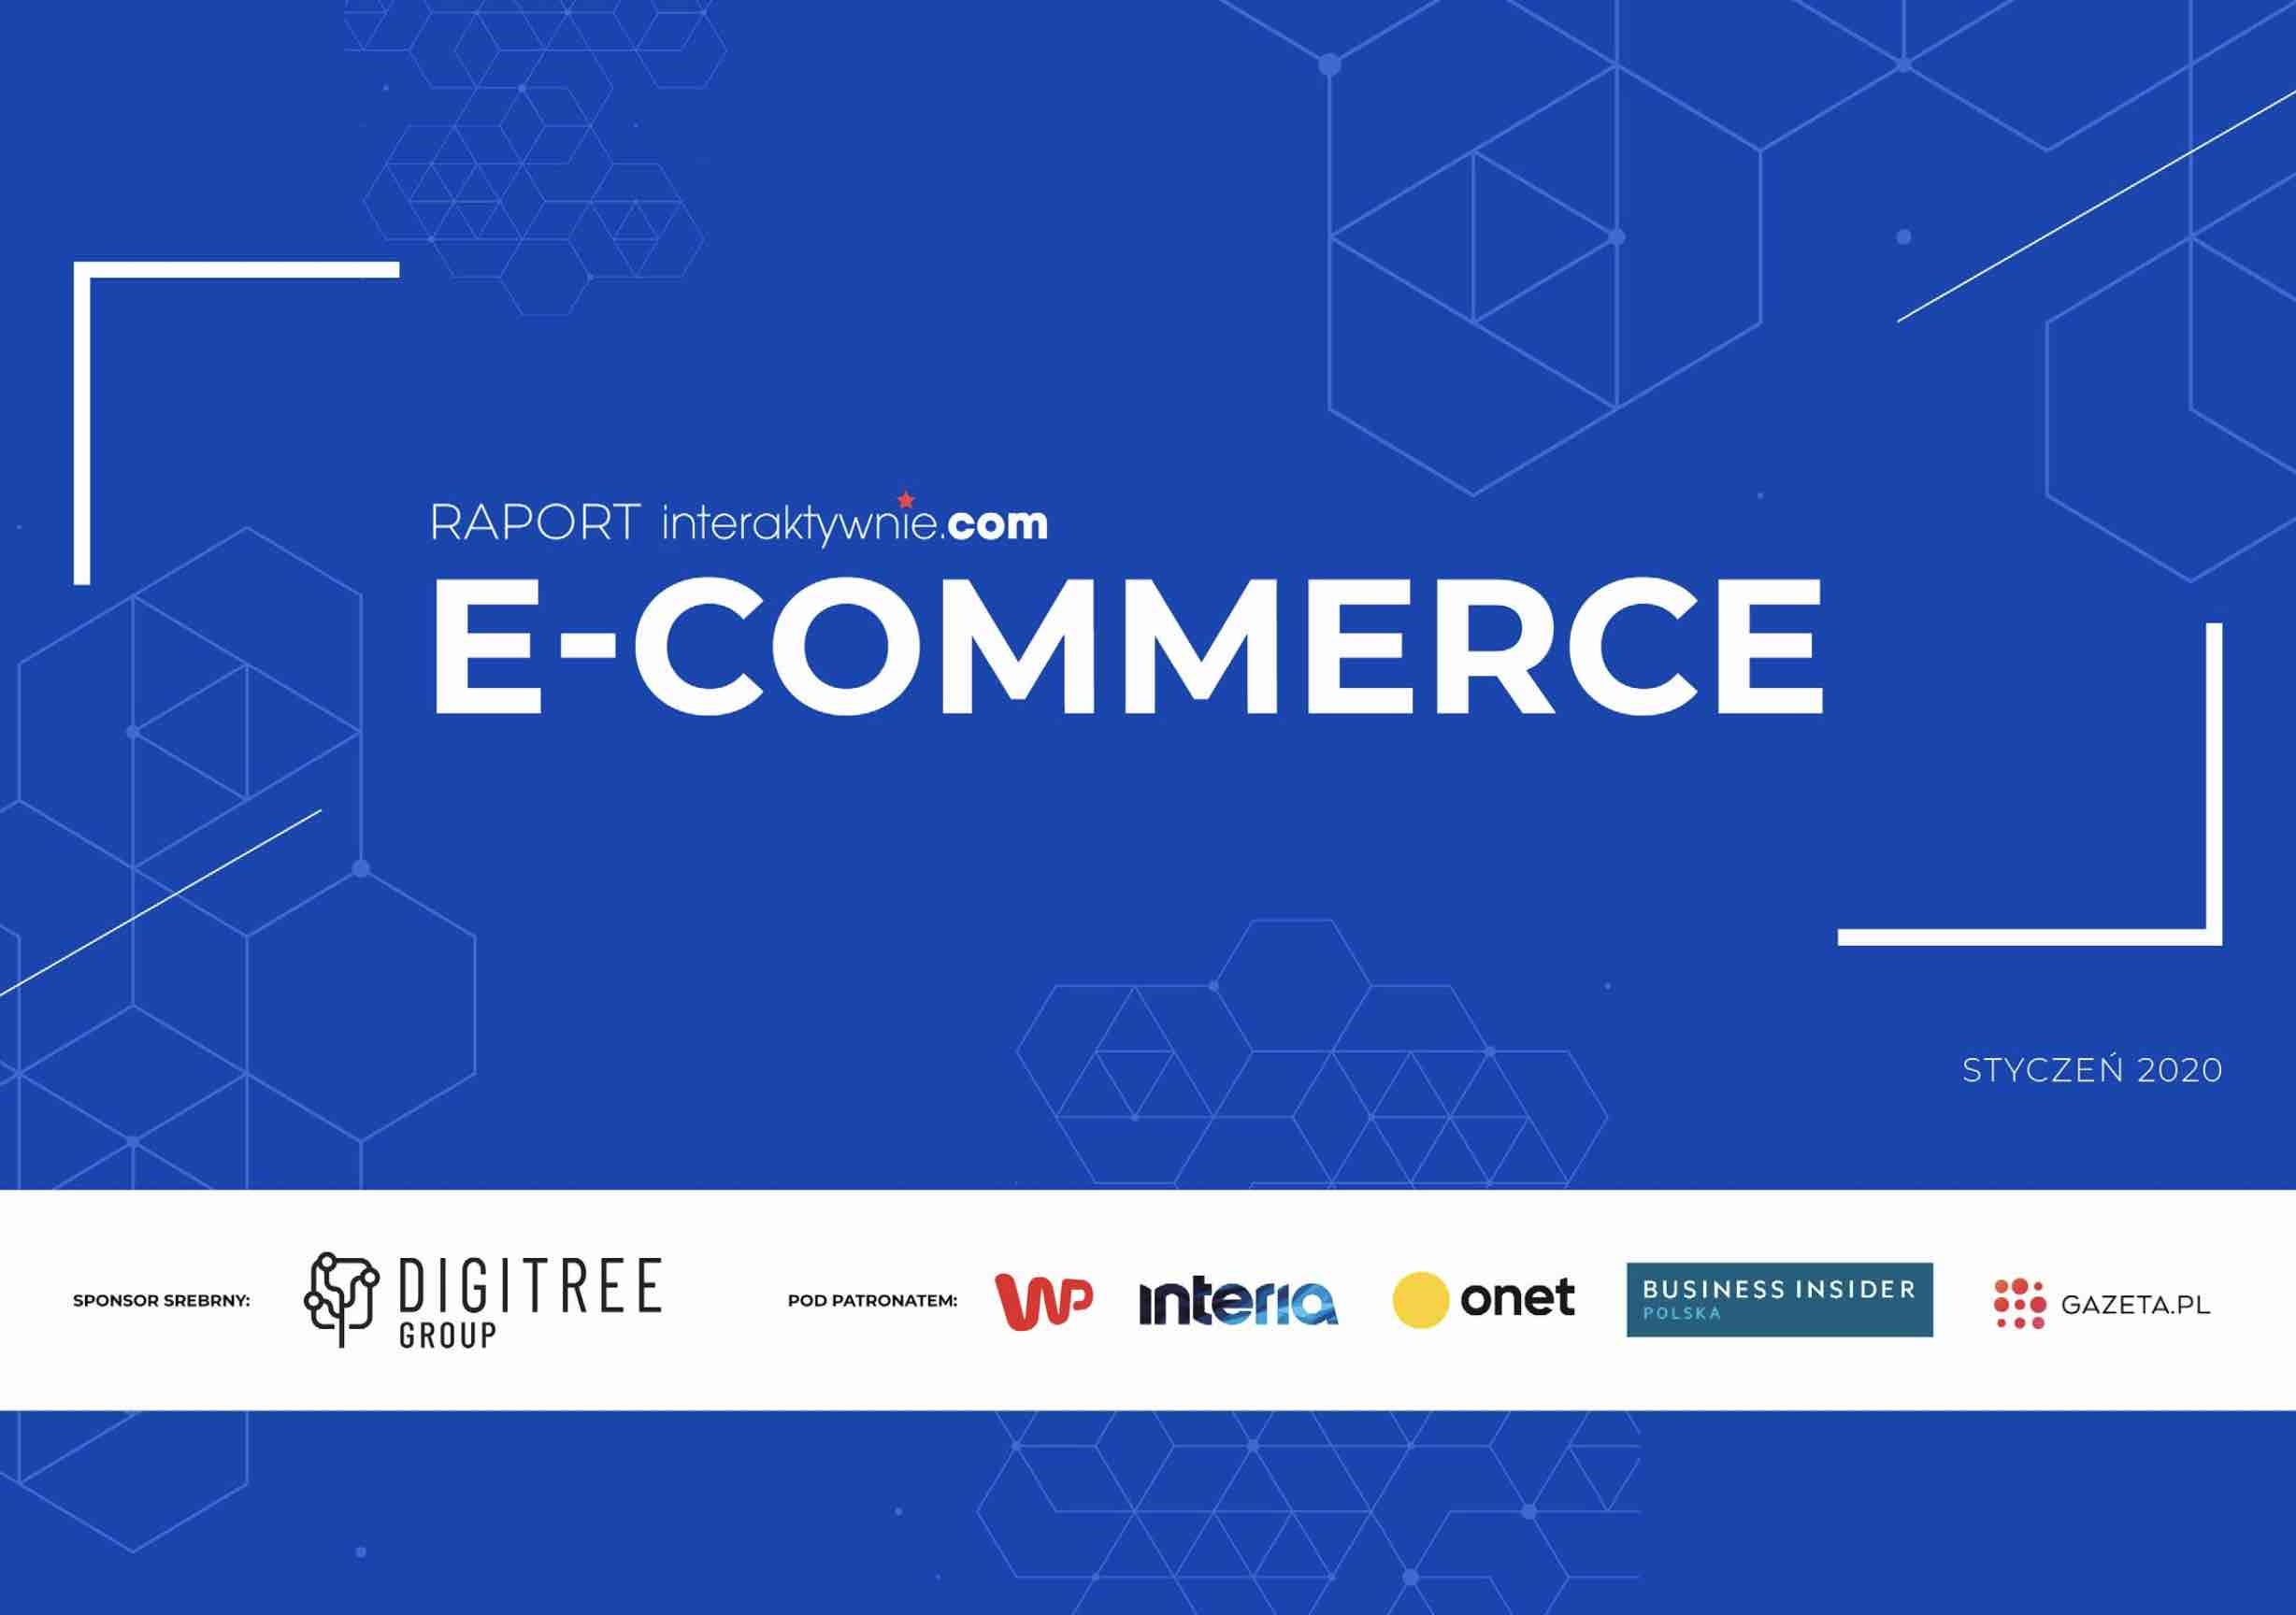 Raport e-commerce